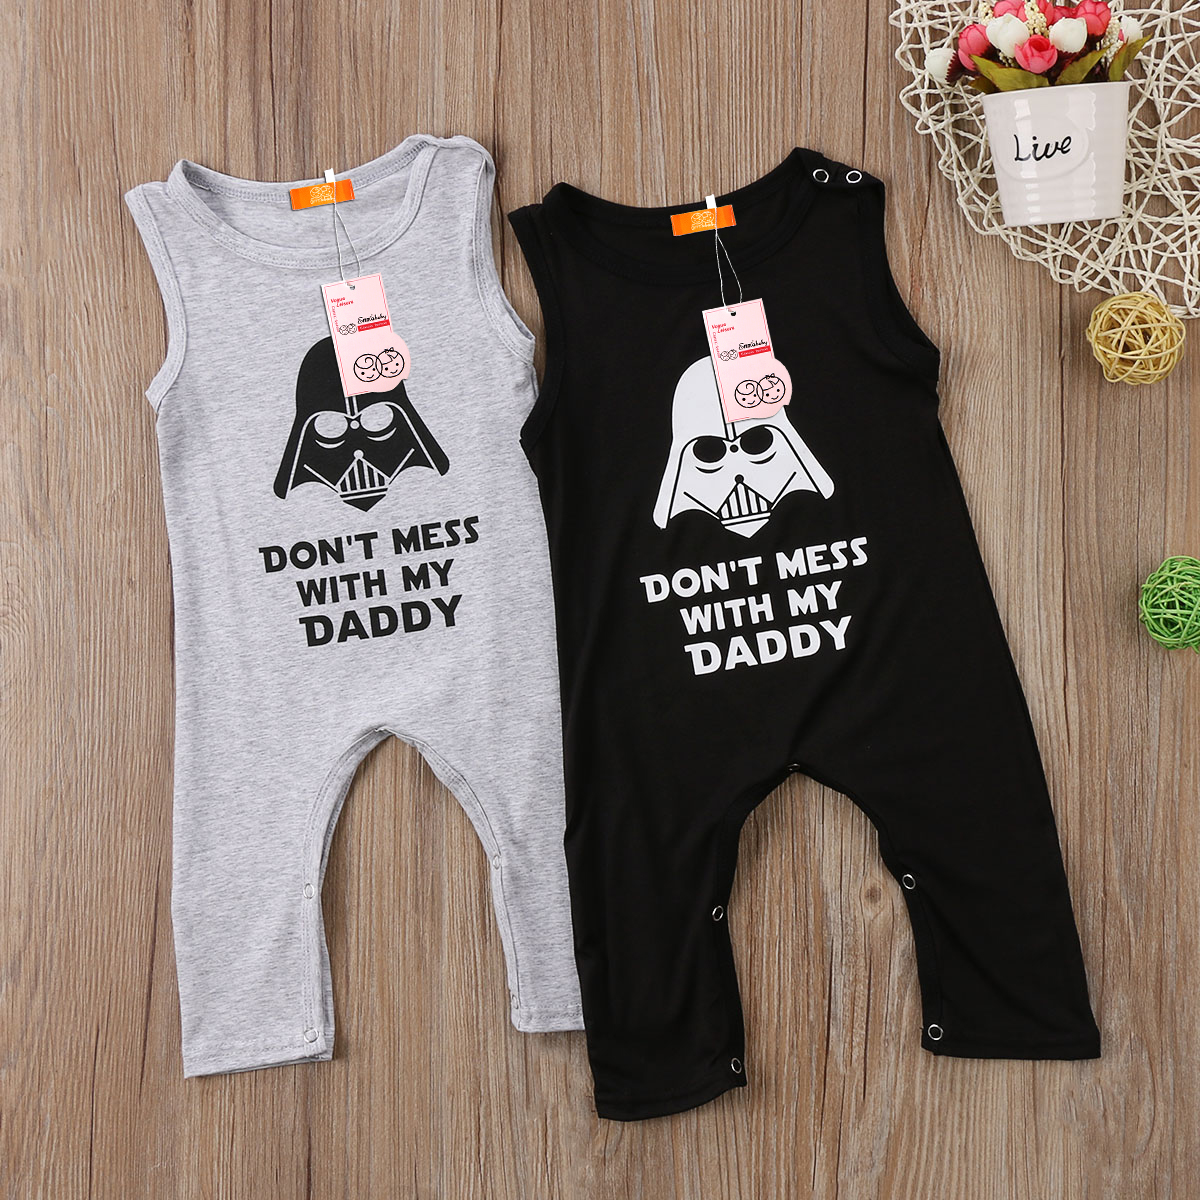 fee1f4c0c Detail Feedback Questions about Cartoon Letter Stock Baby Boy Girl Toddler  Star Wars Romper Jumpsuit Playsuit Sleeveless Outfit on Aliexpress.com    alibaba ...